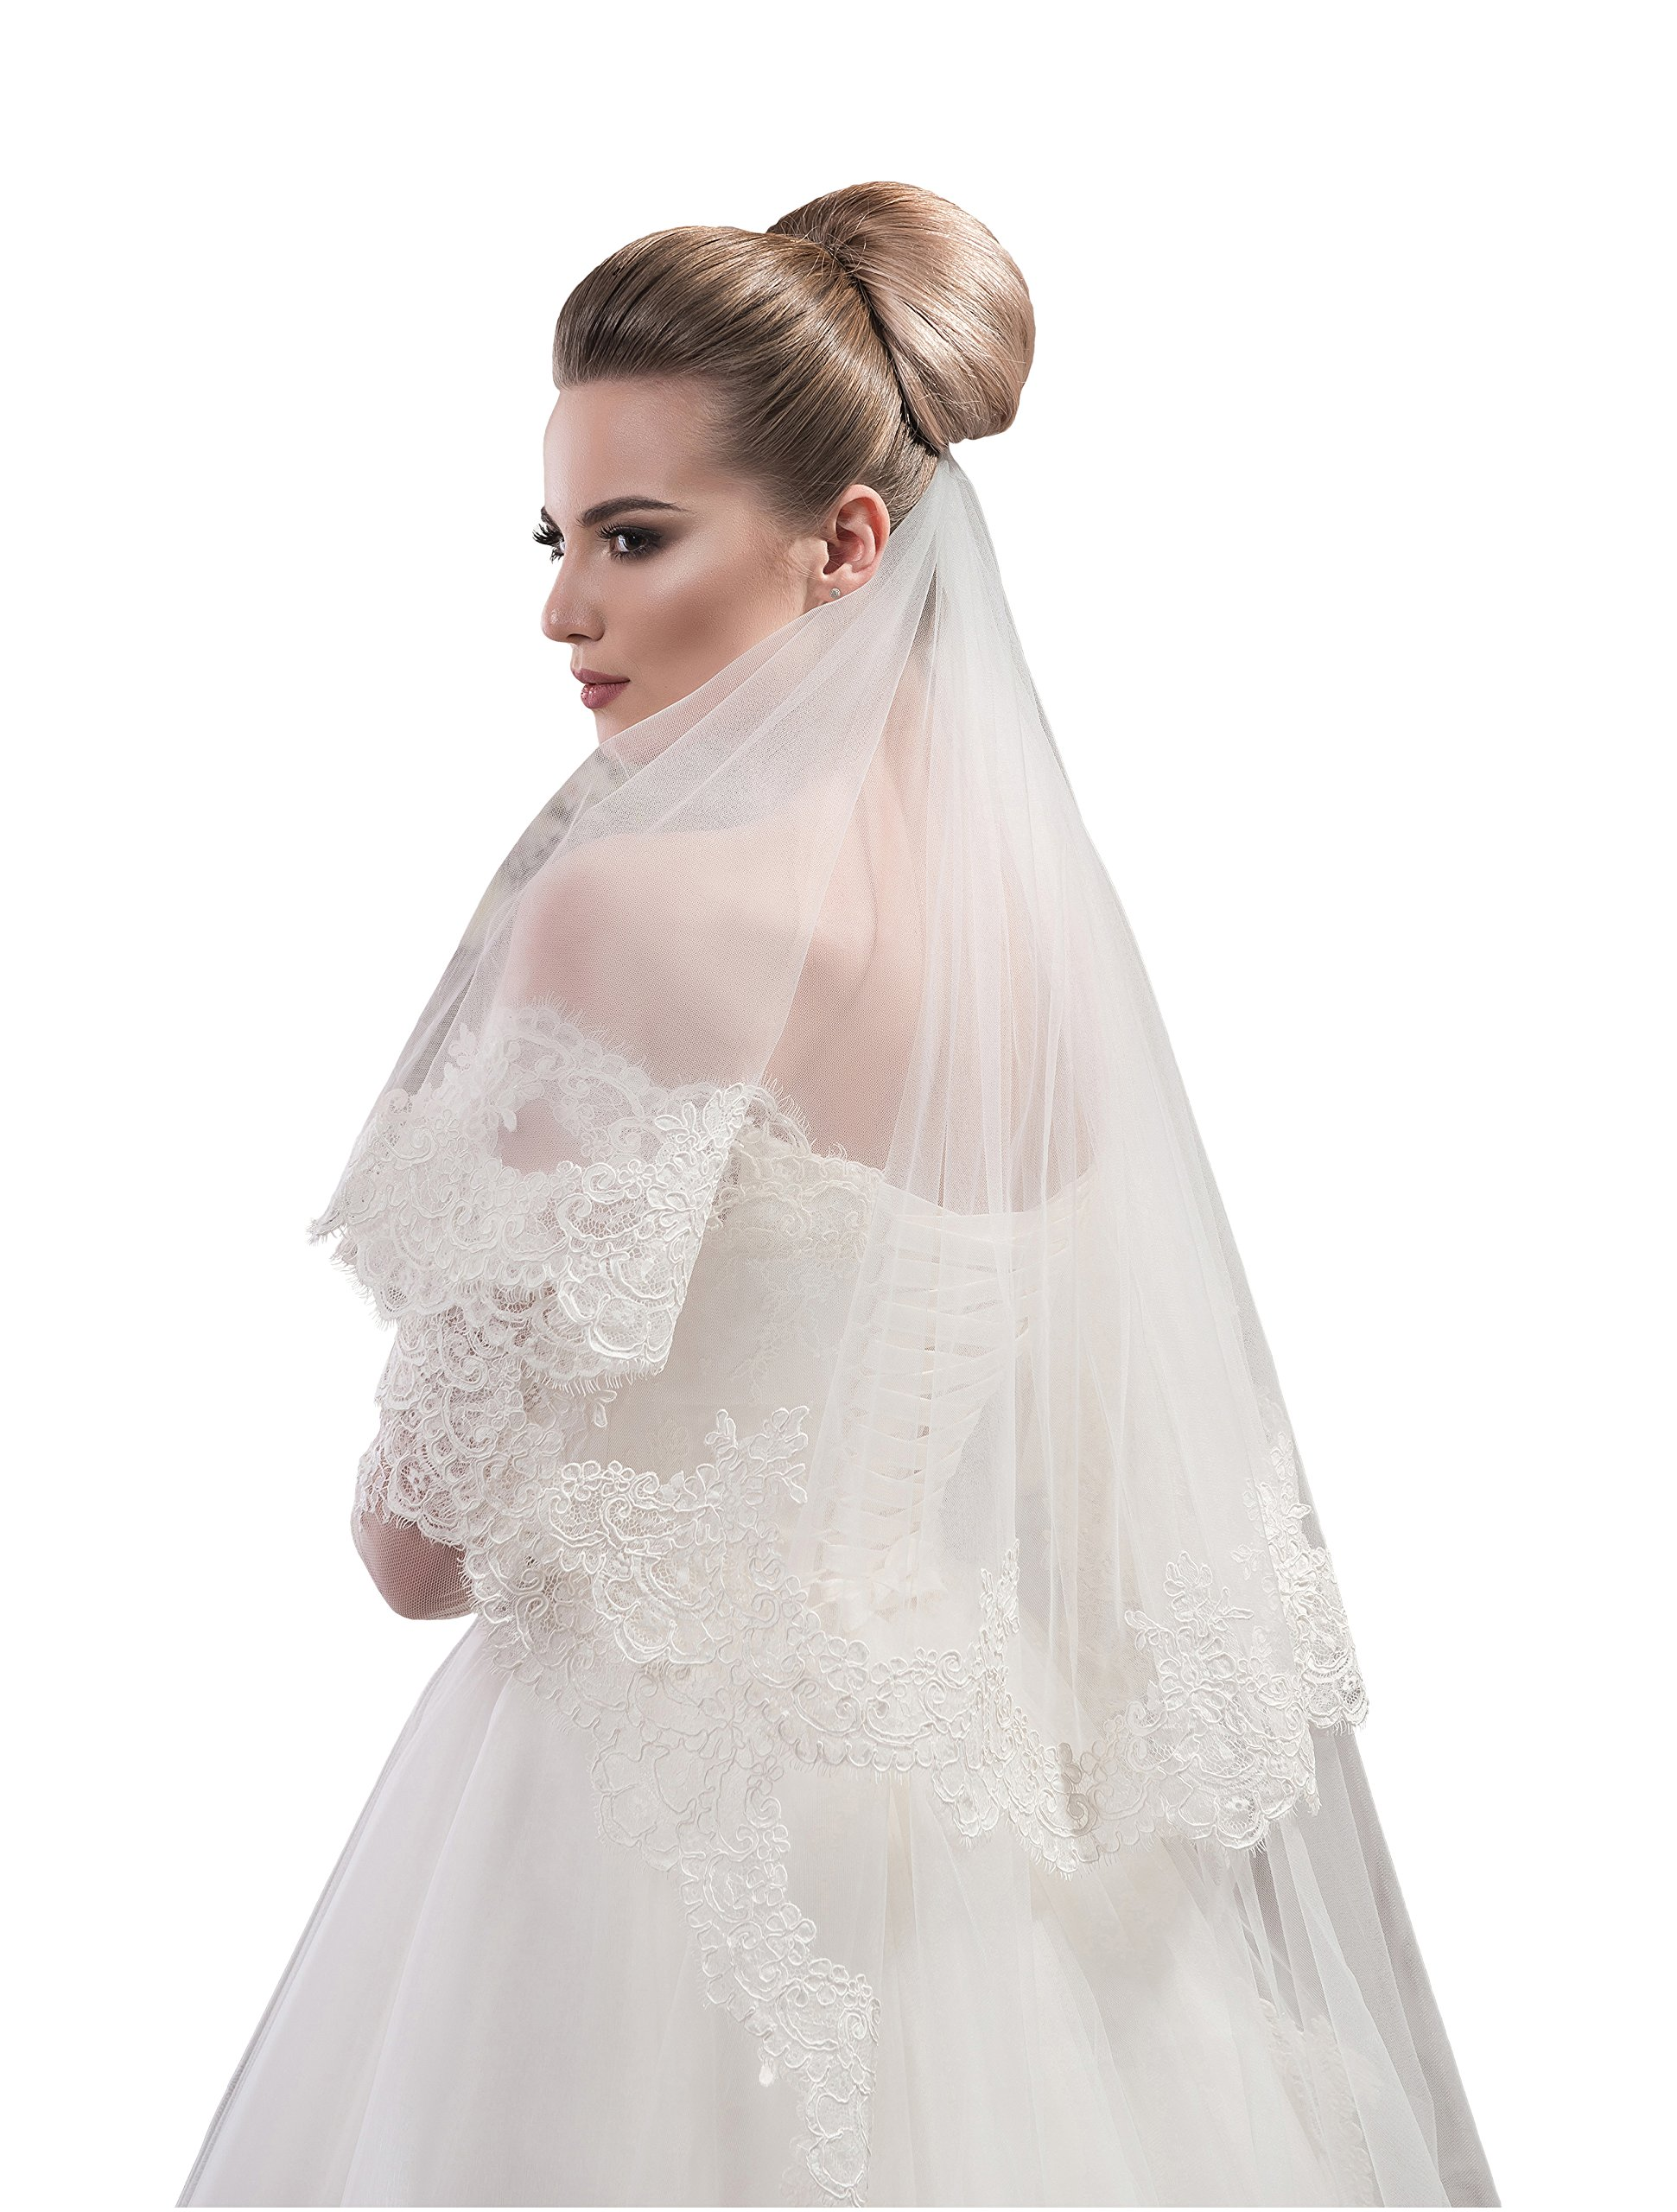 "Bridal Veil Gloria from NYC Bride collection (short 30"", ivory)"